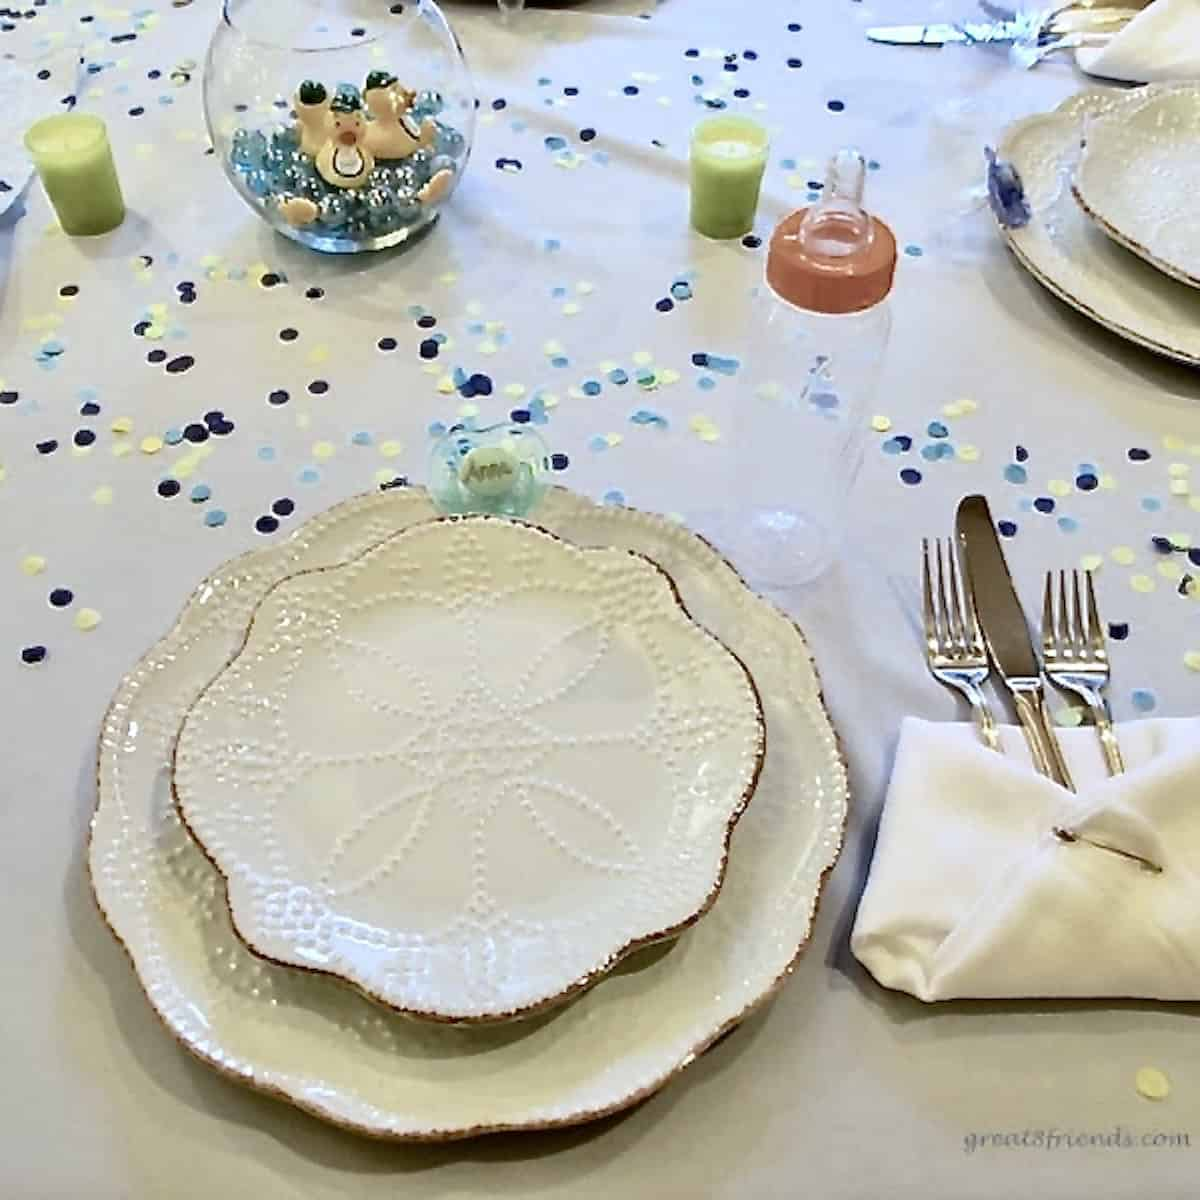 Table setting with confetti on a white table cloth, a baby bottle and a fish bowl with glass marbles and small rubber ducks.